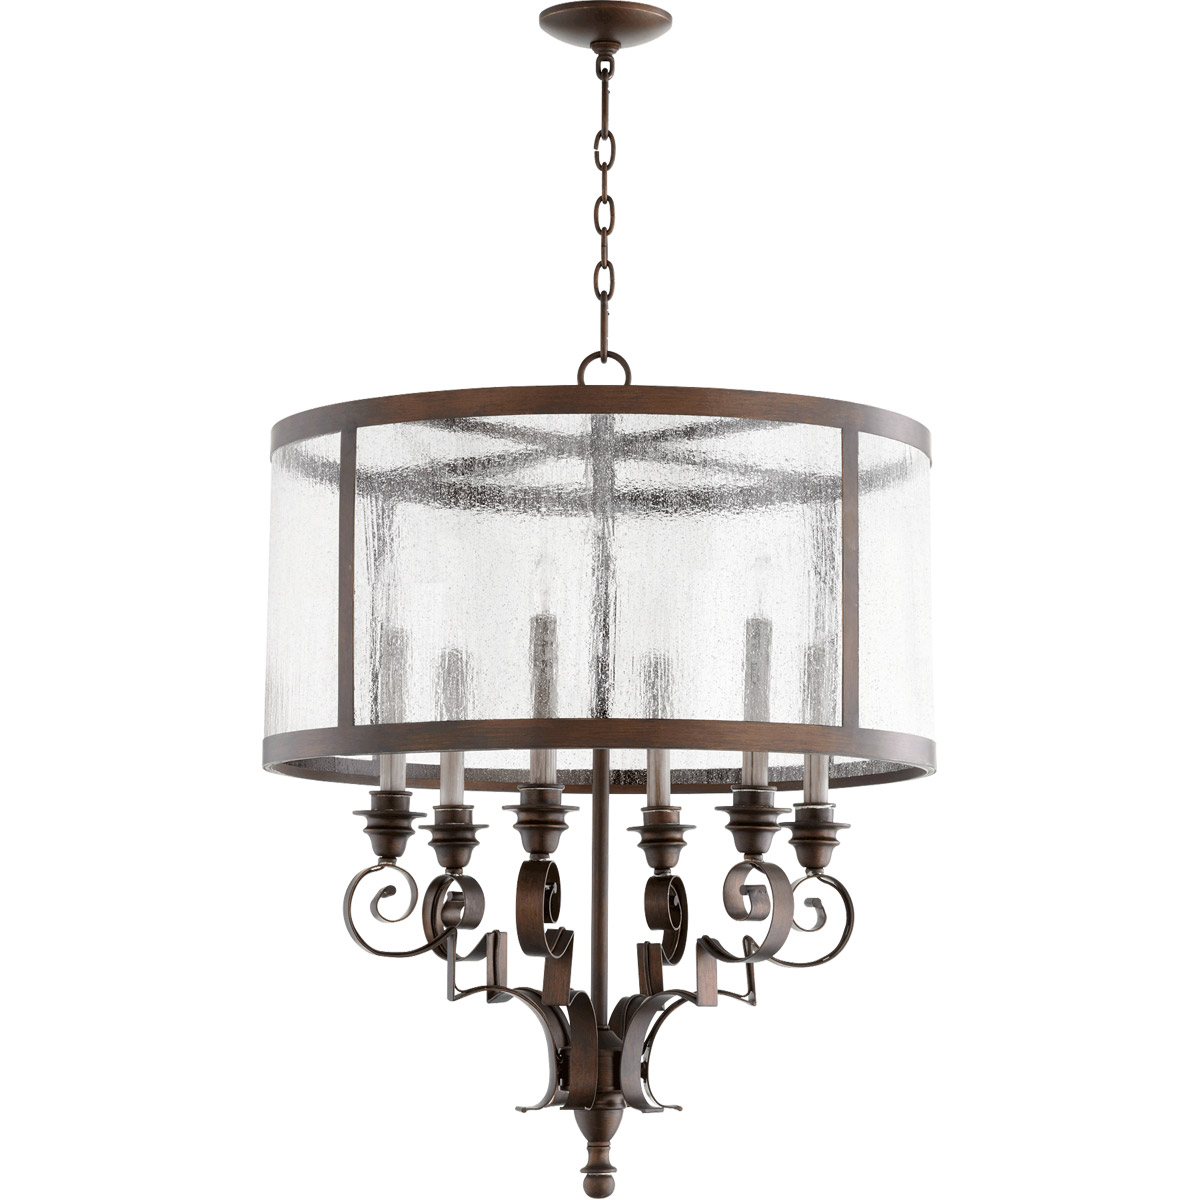 Chandeliers 6 Light With Vintage Copper Finish Candelabra Base Bulbs 24 inch 360 Watts